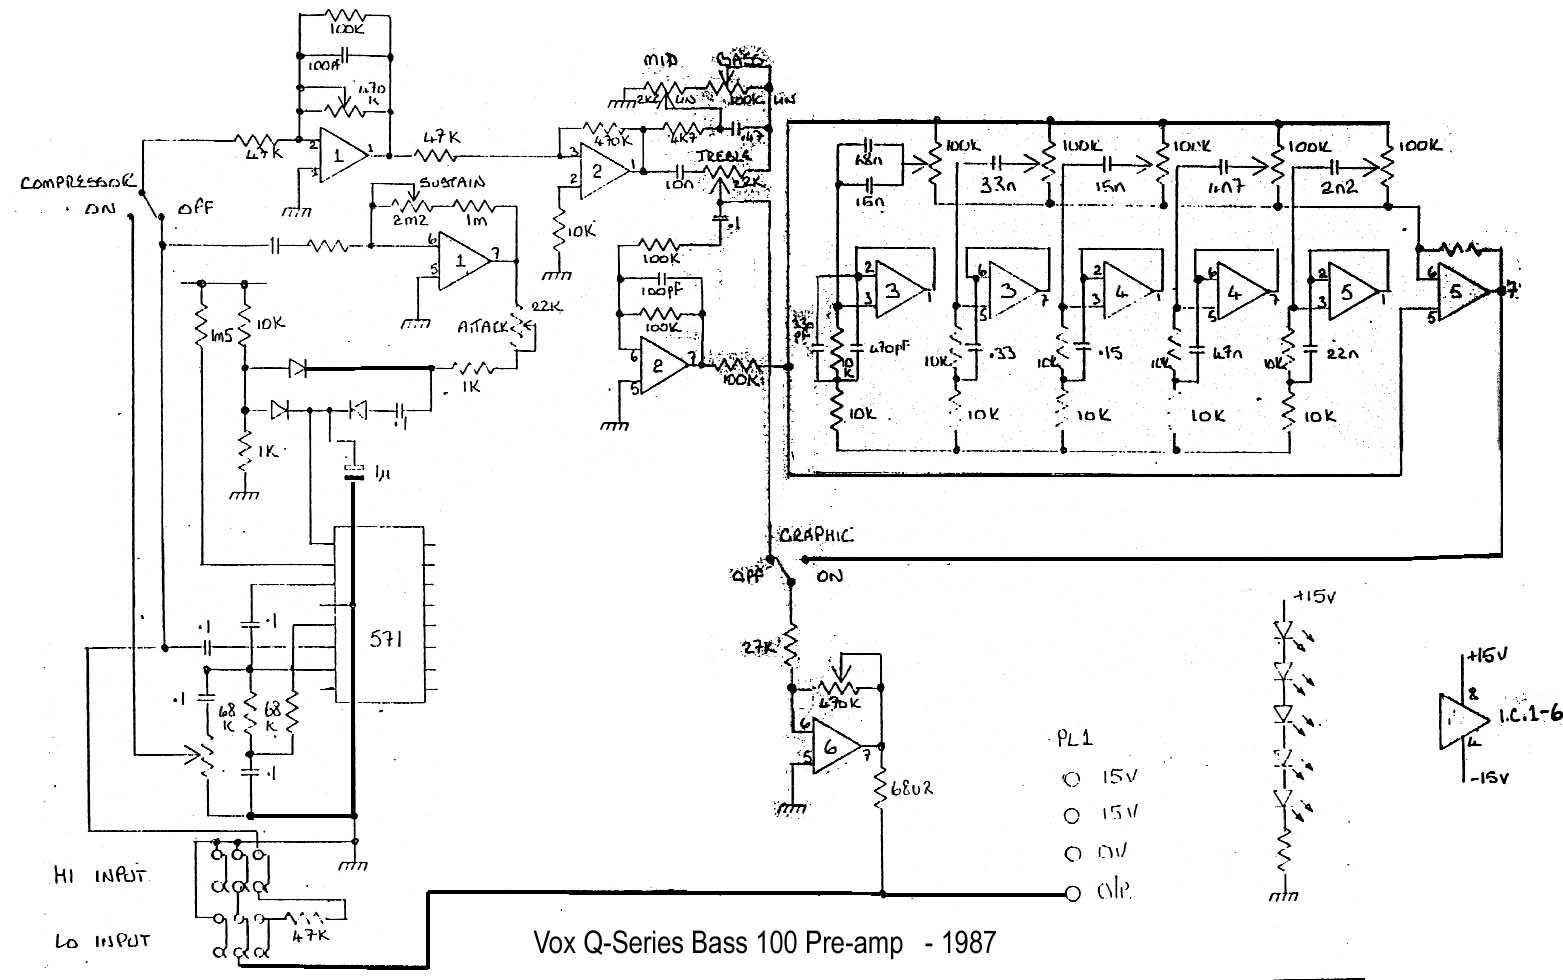 qsbass1 bass preamp circuit diagram circuit and schematics diagram preamp wiring diagram at bayanpartner.co